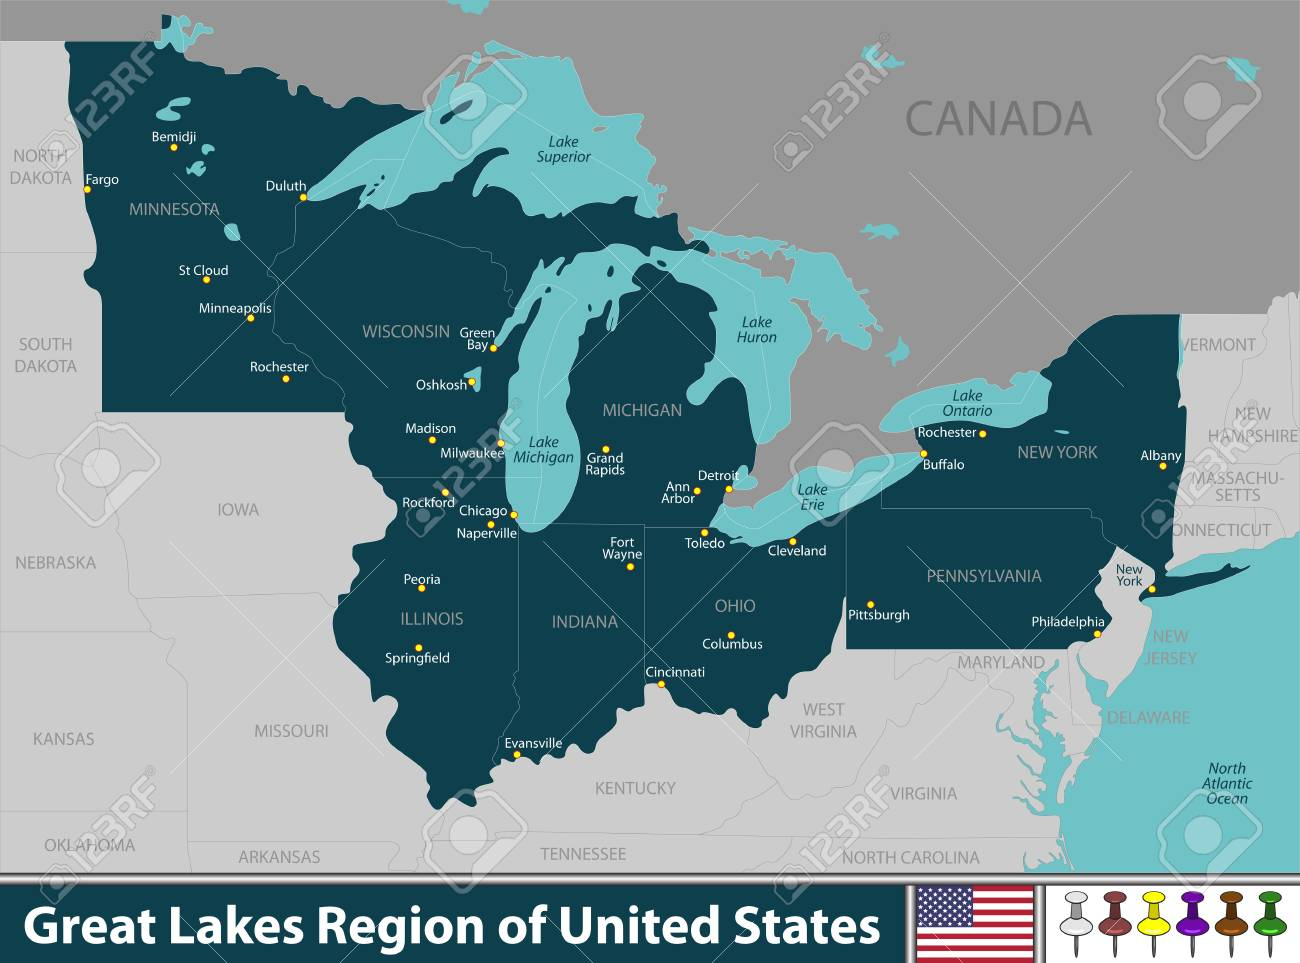 United States Great Lakes Map on rocky mountains united states map, west central united states map, great lakes map with states, great lakes states outline map, atlantic ocean united states map, colorado river united states map, big united states map, gulf coast united states map, gulf of mexico united states map, toronto united states map, the northeast united states map, rio grande united states map, gulf of alaska united states map, great lakes florida, lake tahoe united states map, great lakes google maps, appalachian mountains united states map, major rivers united states map, lake michigan united states map, lake erie united states map,